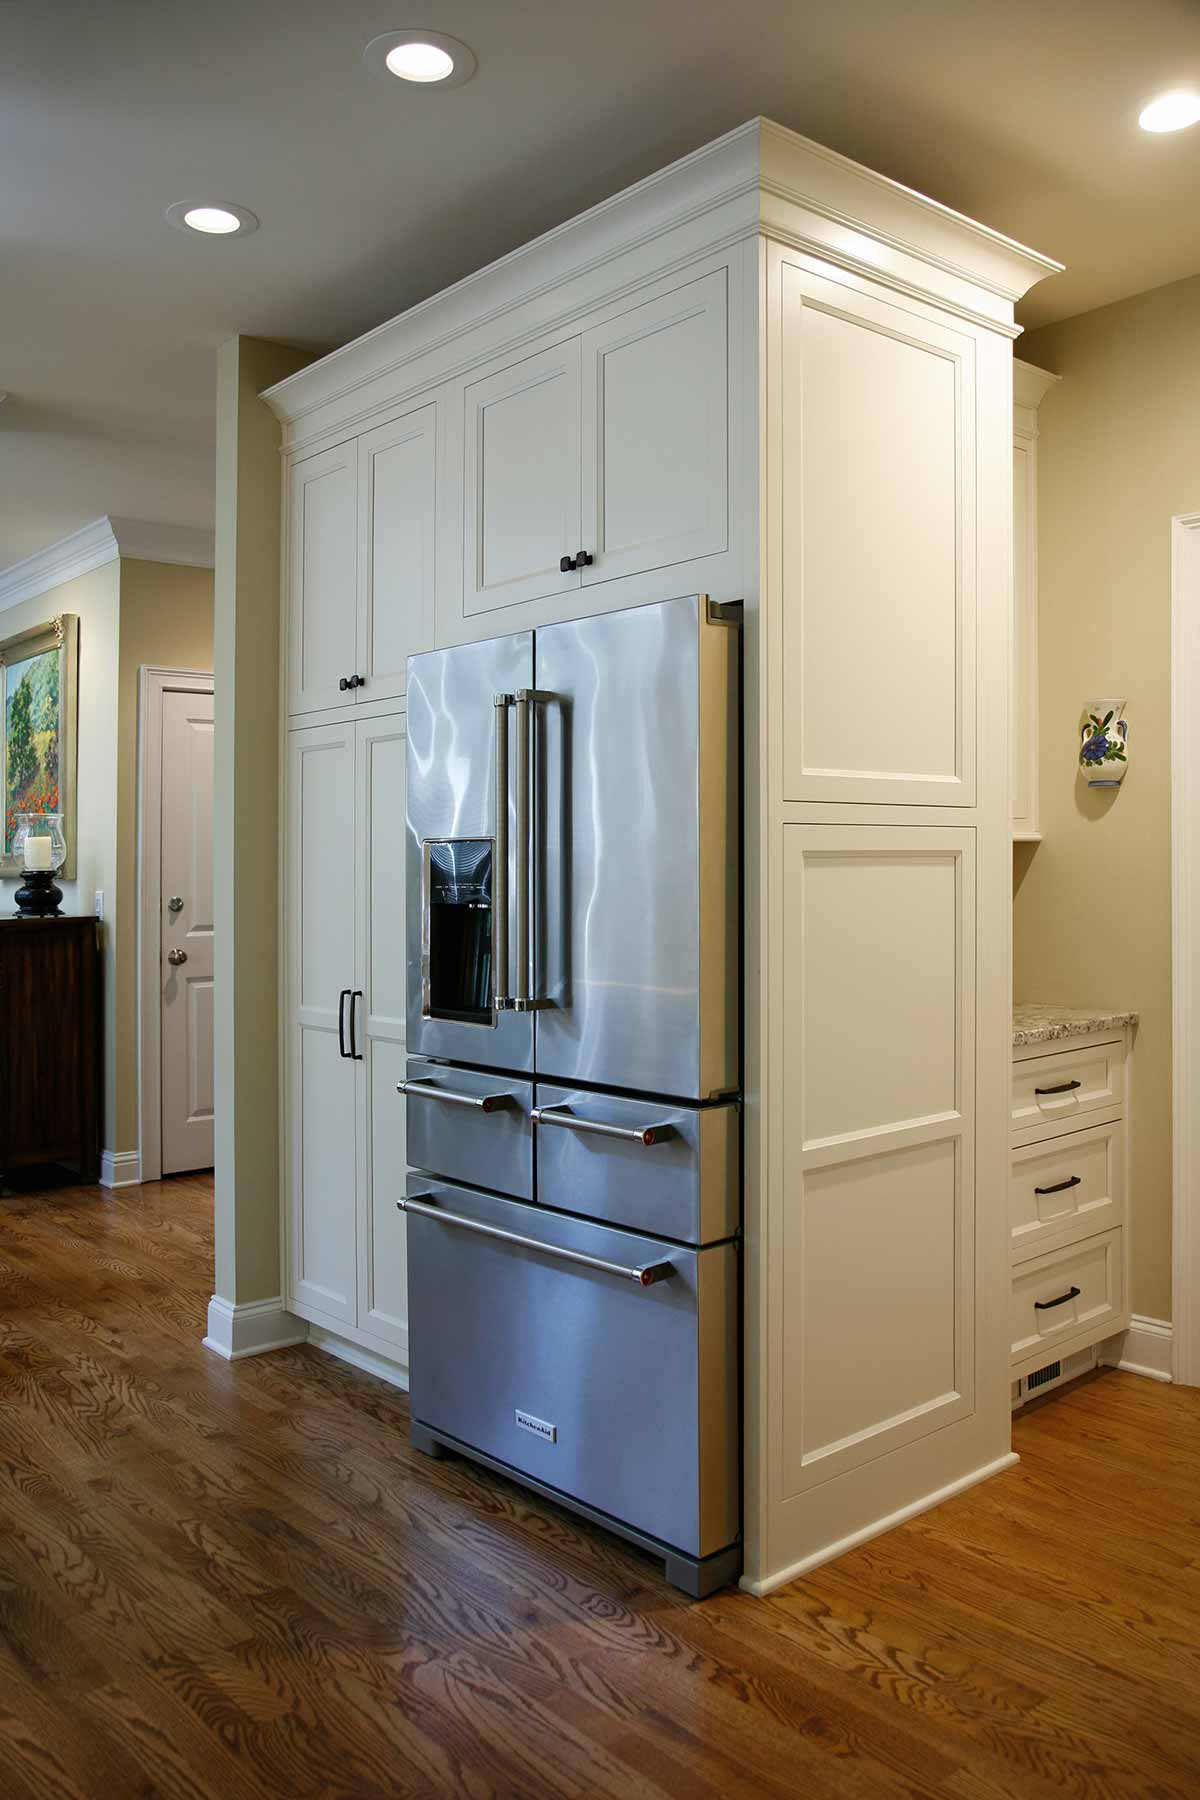 Relocated refrigerator